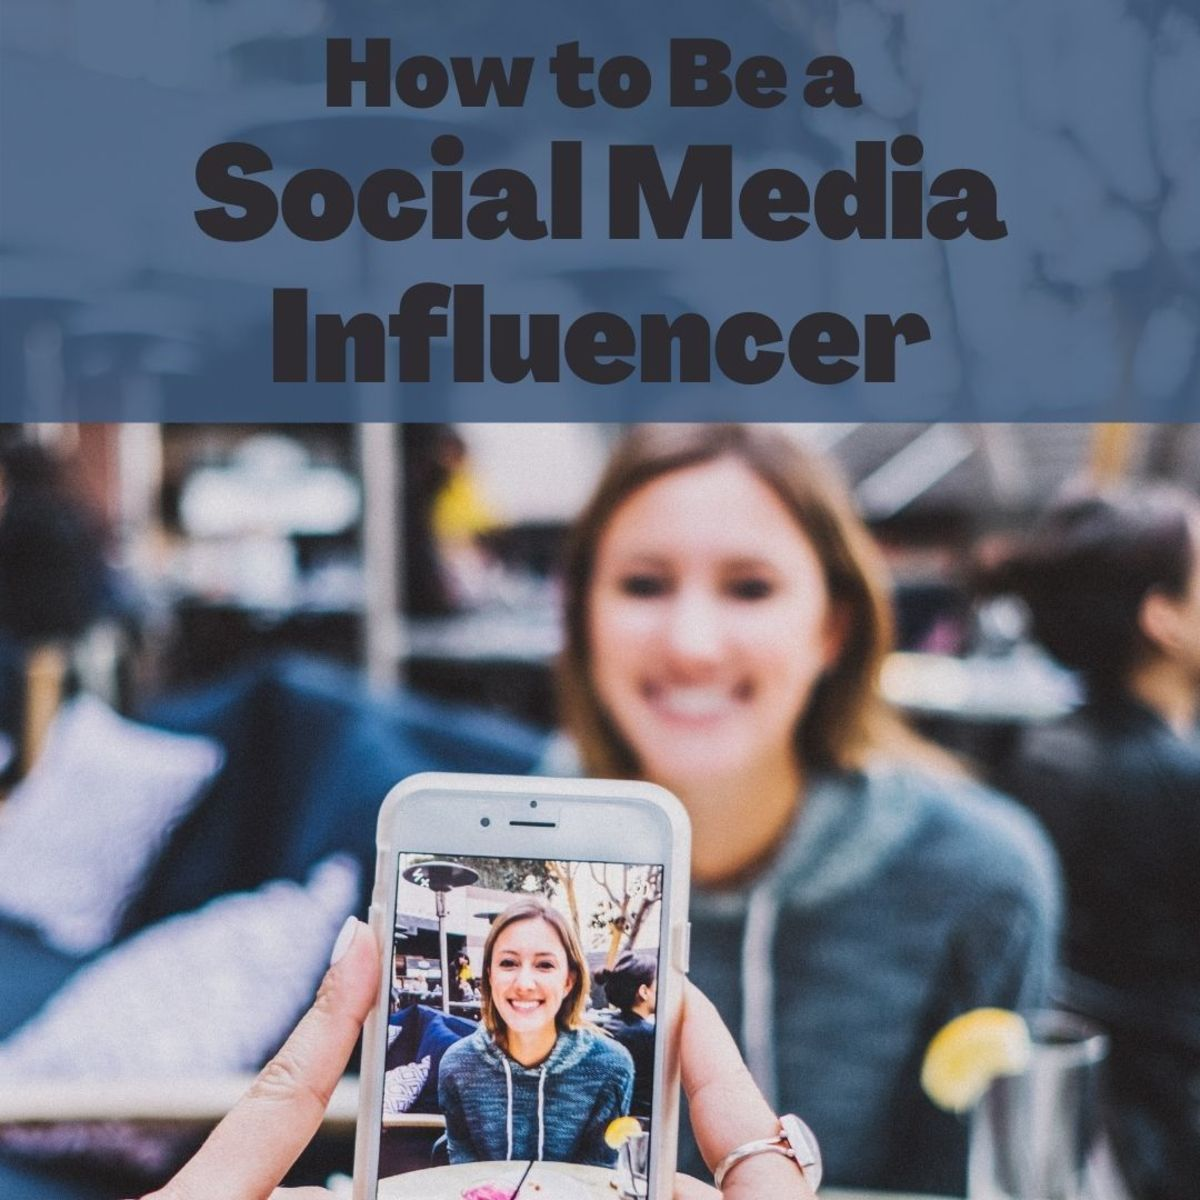 4 Key Tips for Being a Successful Social Media Influencer